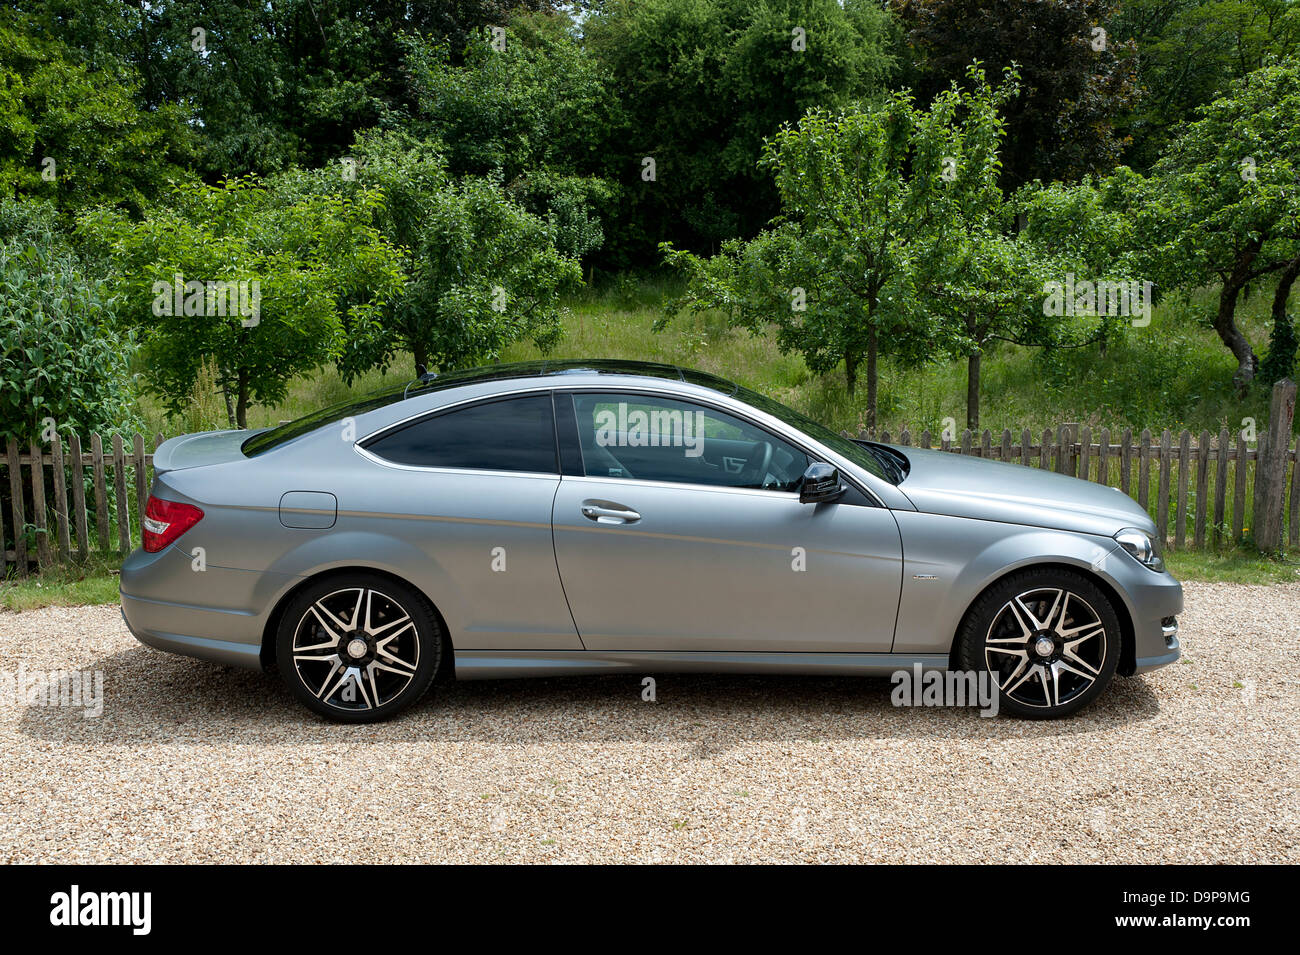 2013 Mercedes Benz C250 CDi Coupe AMG Sport Stock Photo ...